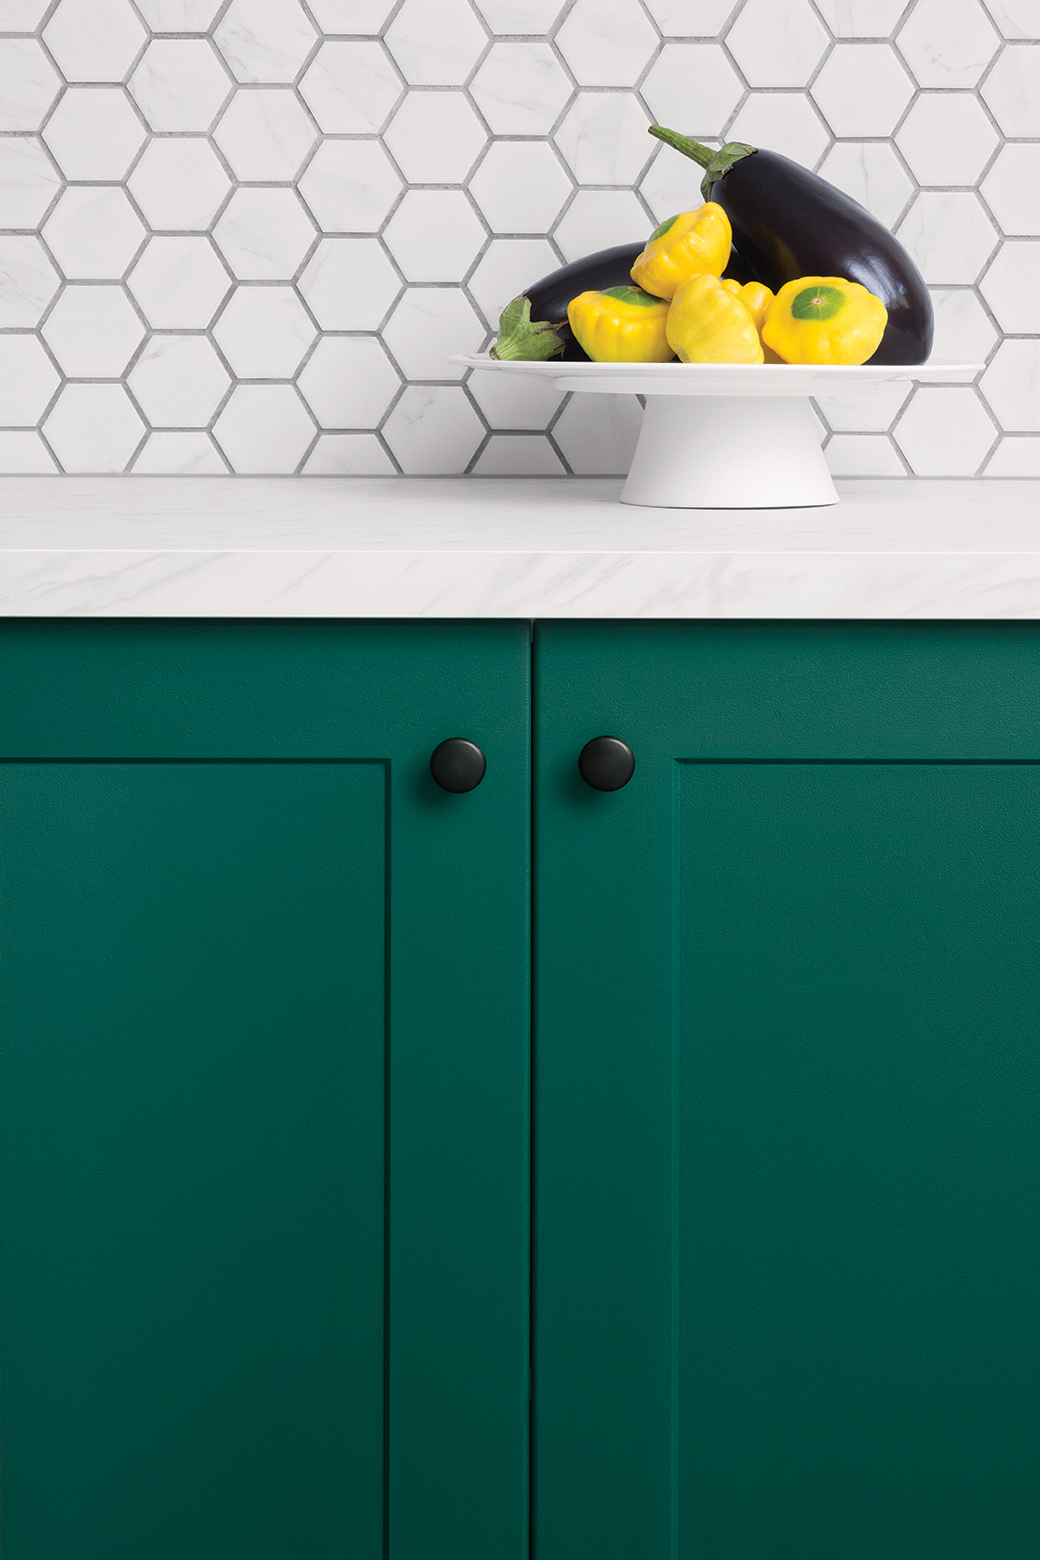 Royal Green - kitchen inspiration and ideas | kaboodle kitchen